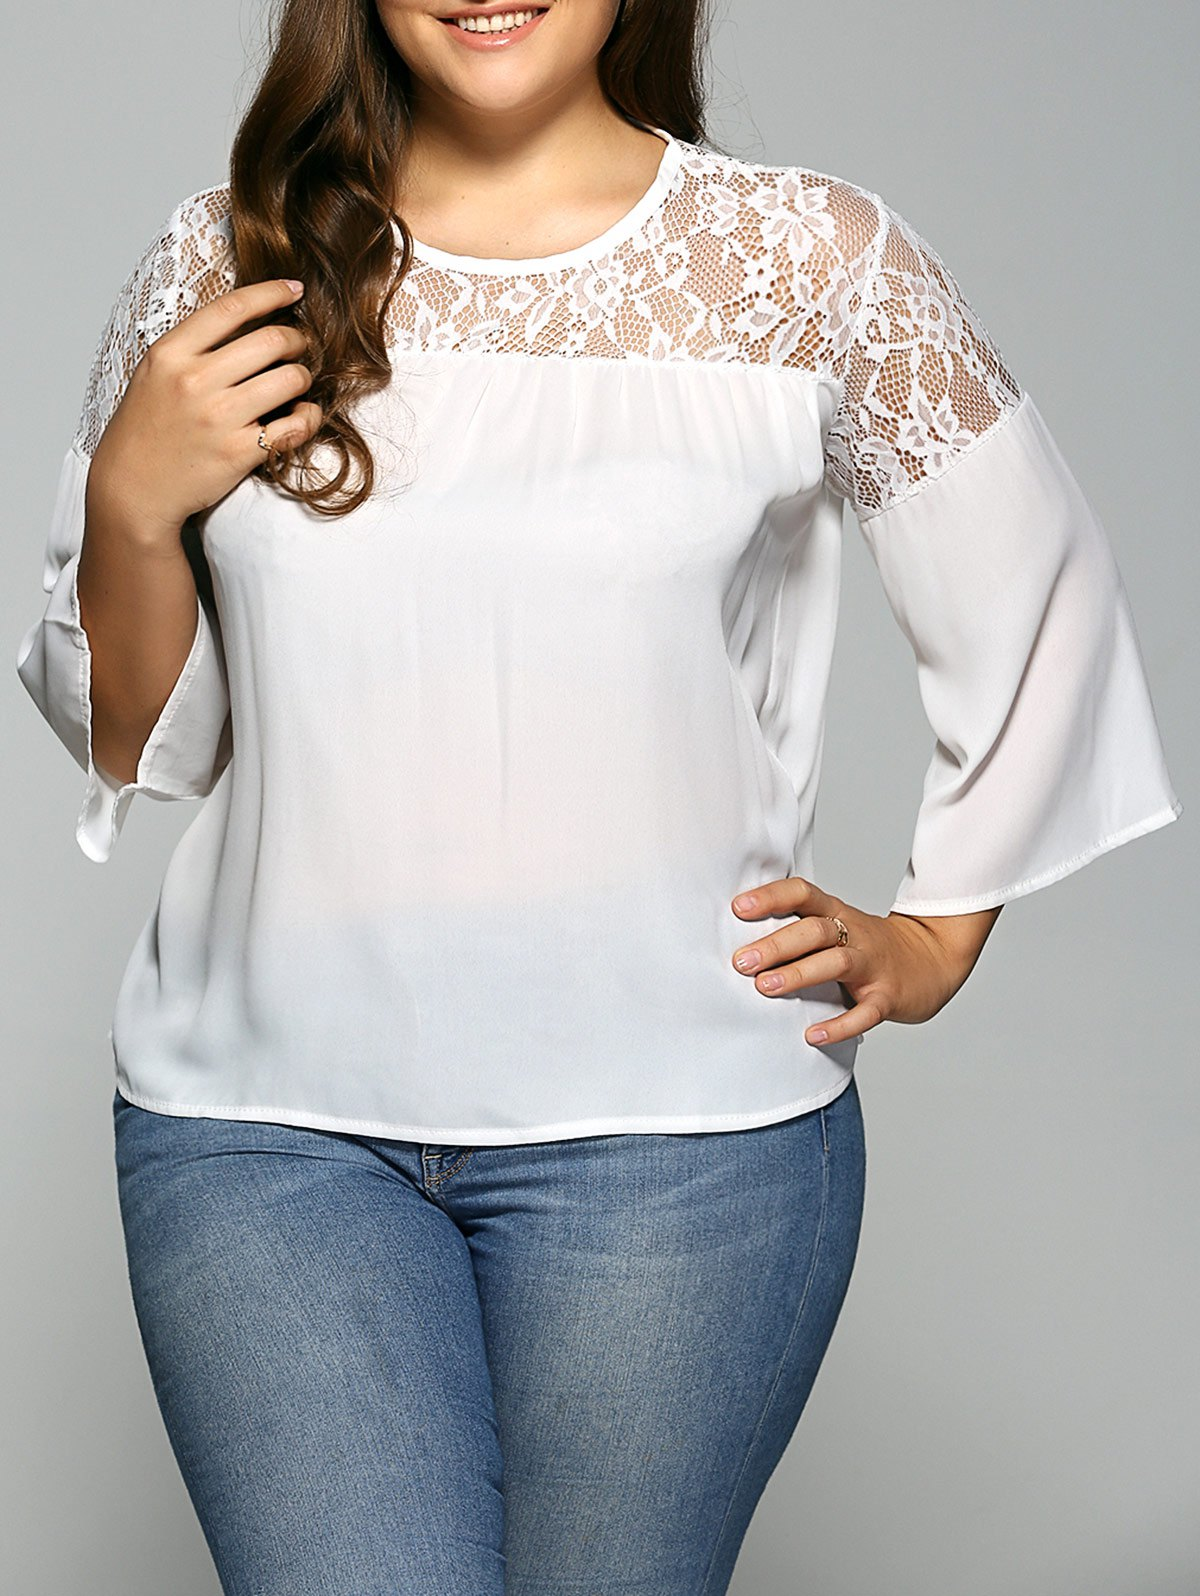 7f0cf52a6ee Unique Lace Spliced Plus Size Chiffon Sheer Blouse